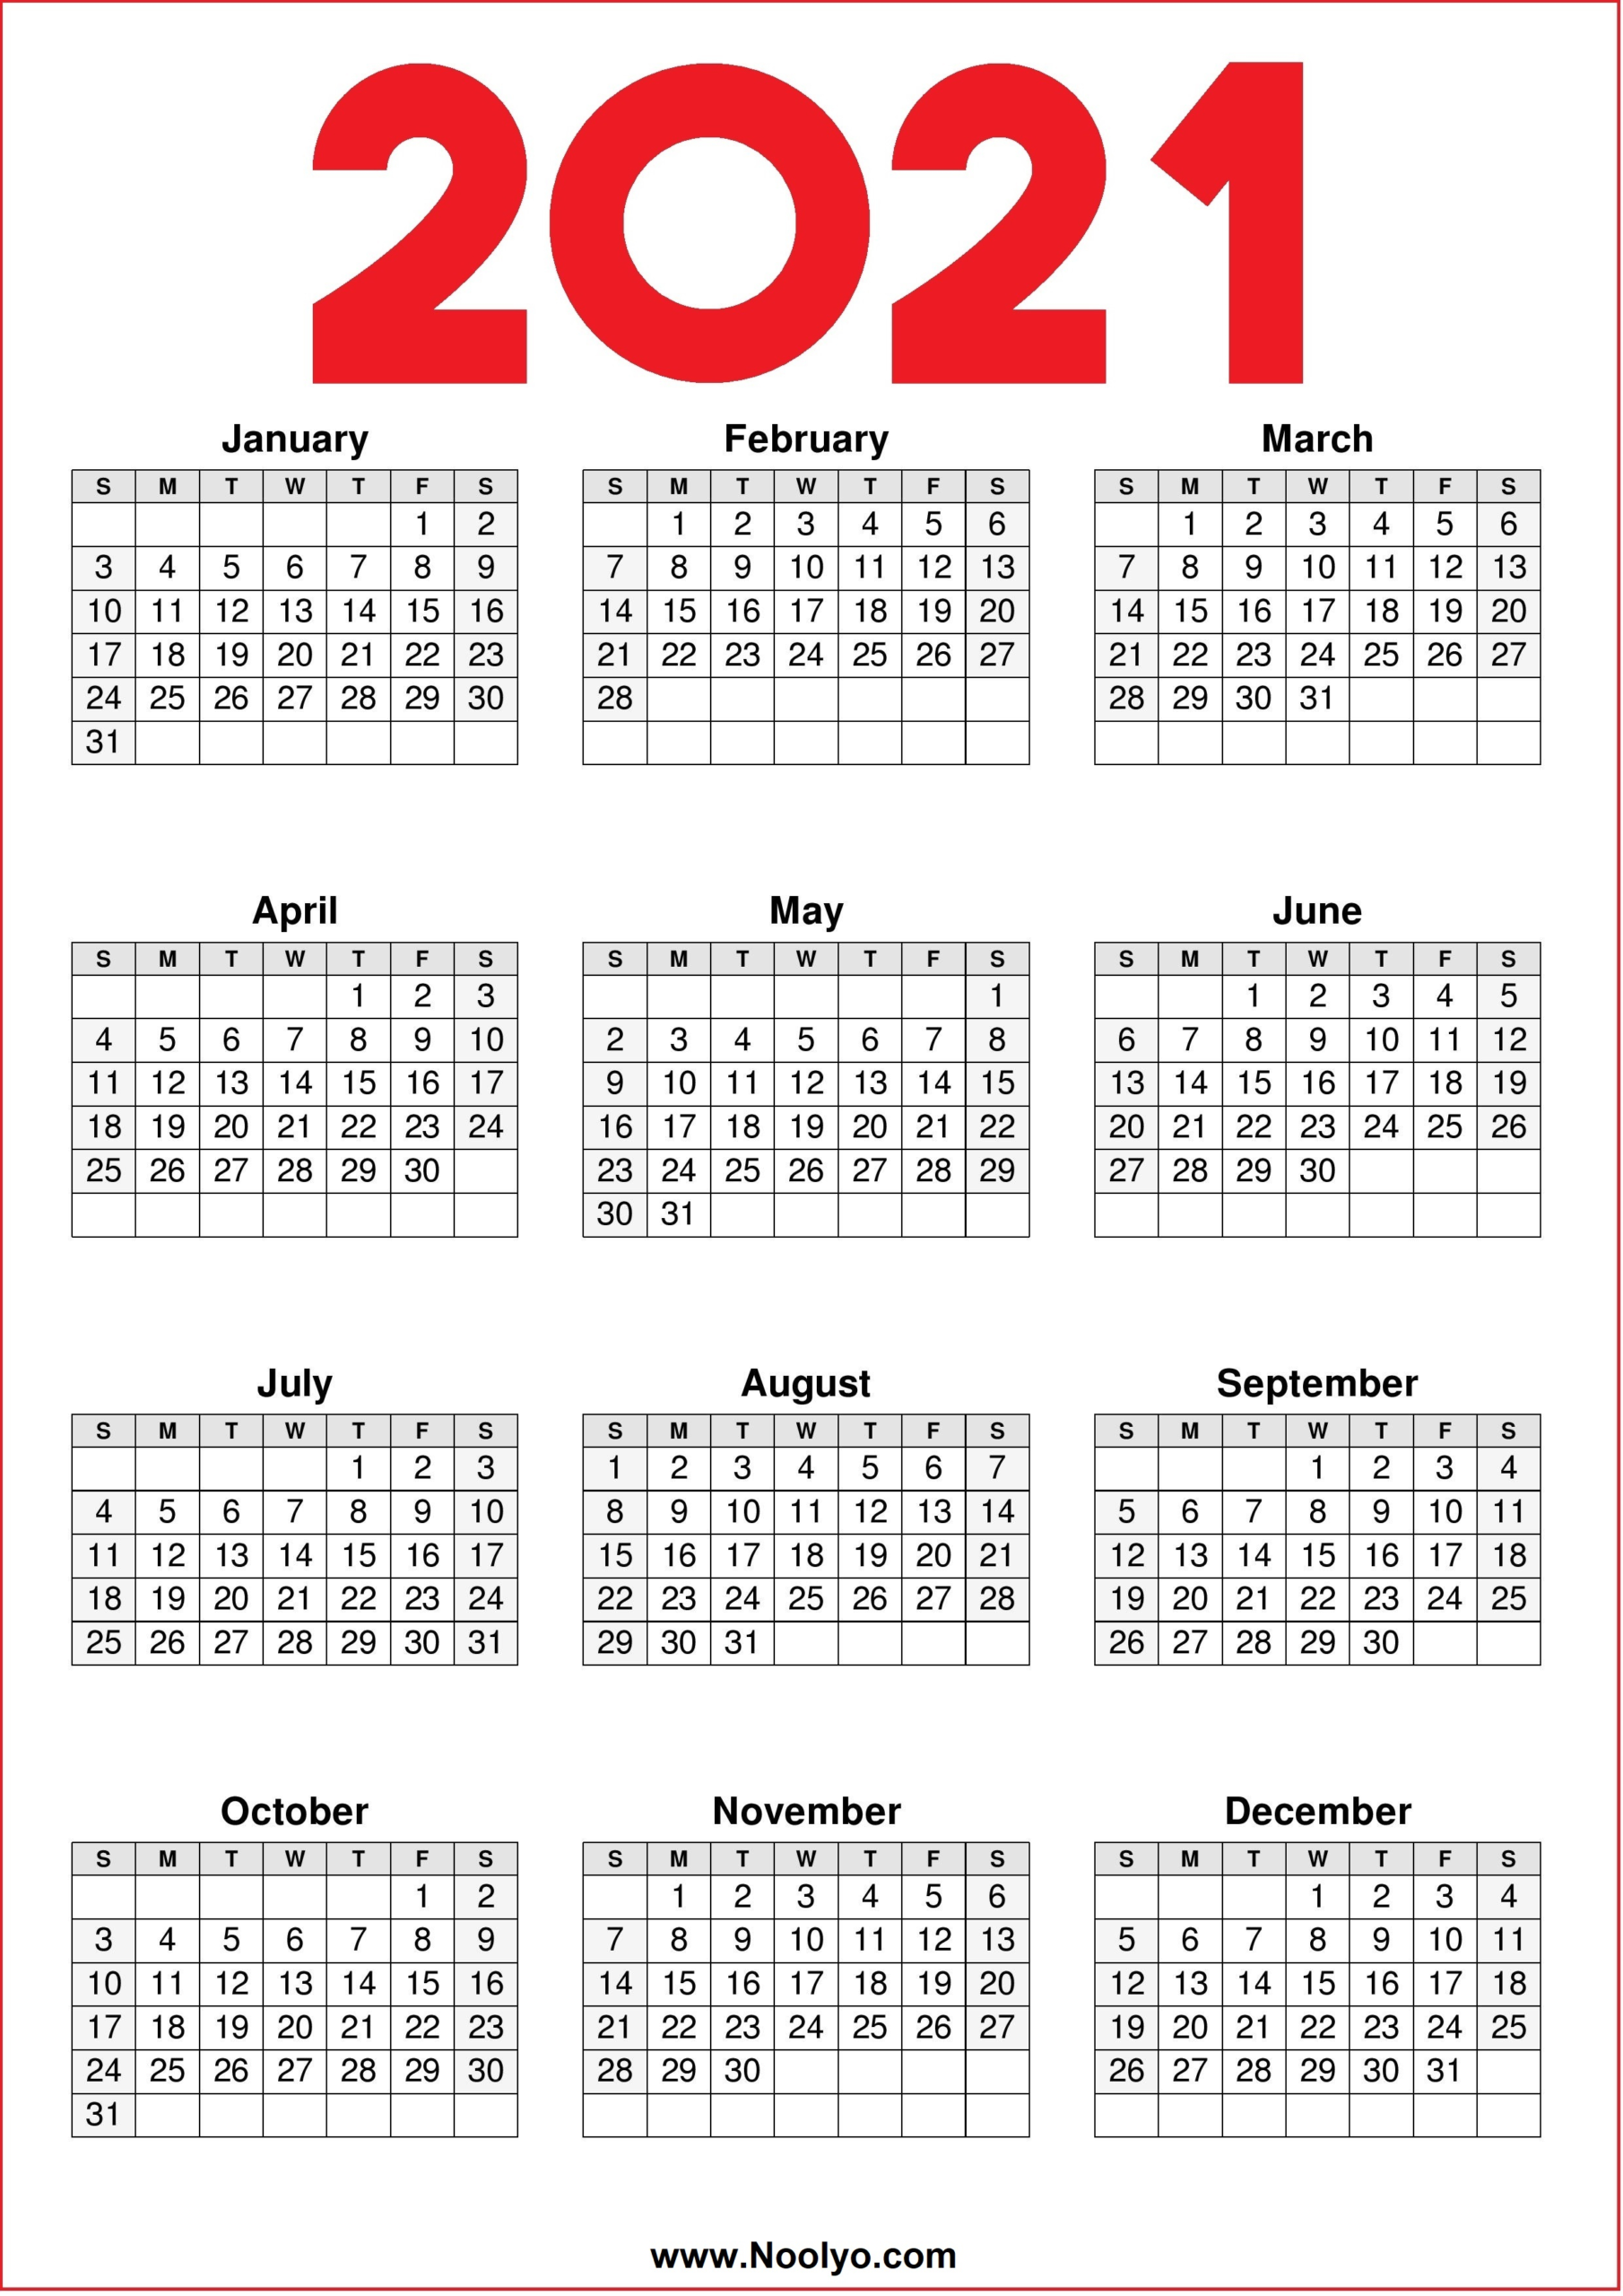 Free 2021 Yearly Calender Template : Calendar 2021